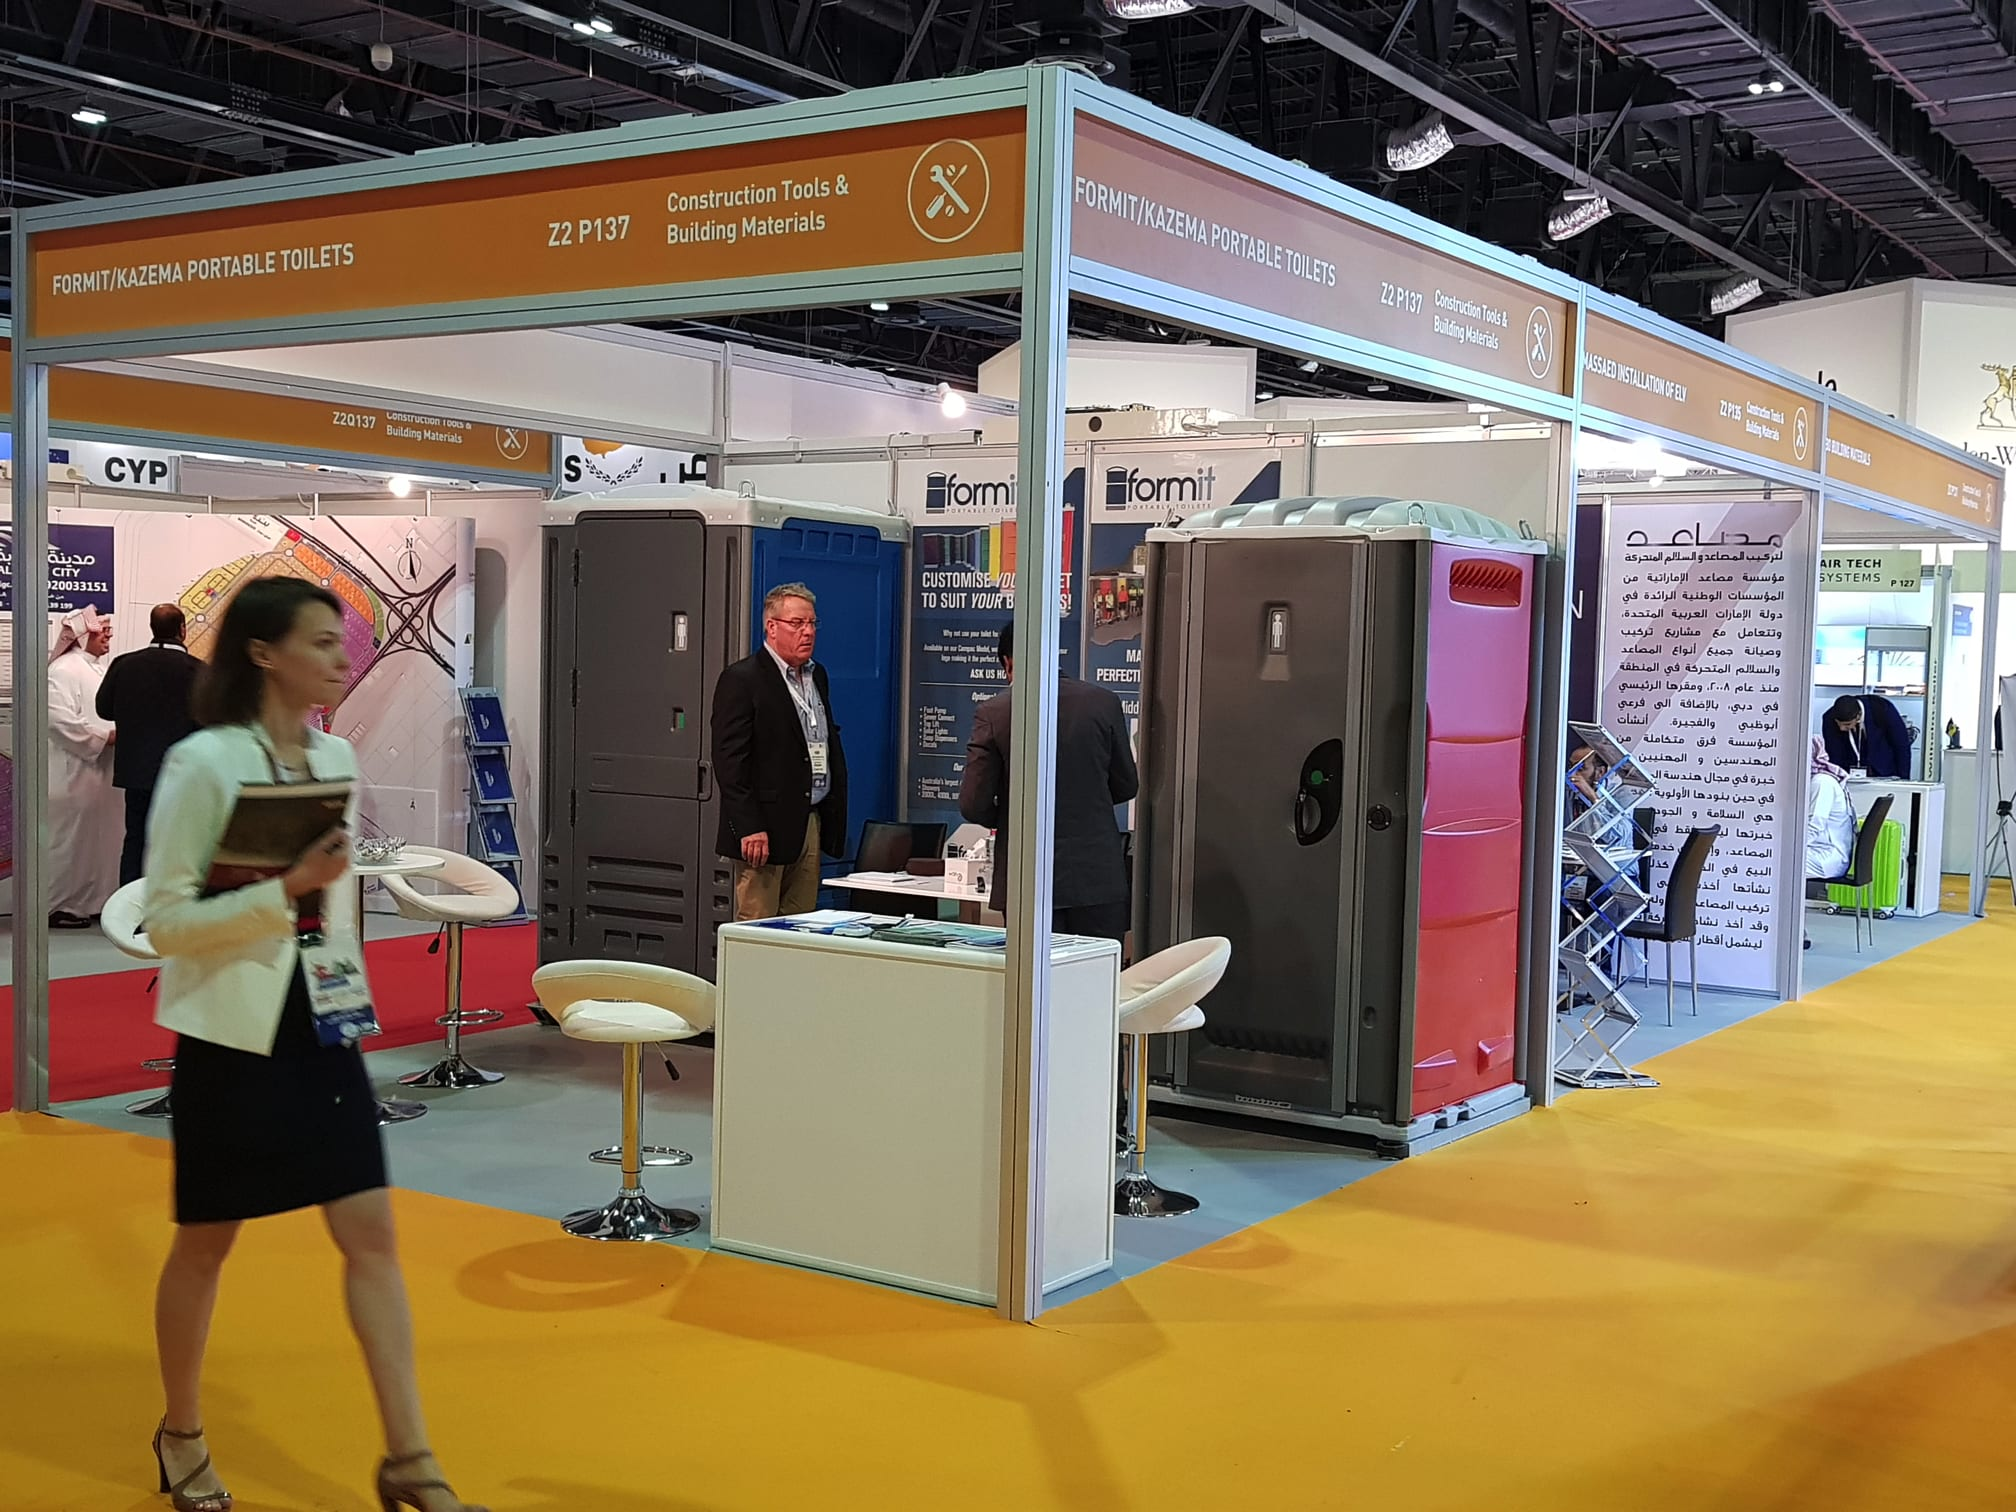 NEWS - image Big-5-Expo-Kazema-Portable-Toilets on http://www.kazemaportabletoilets.com